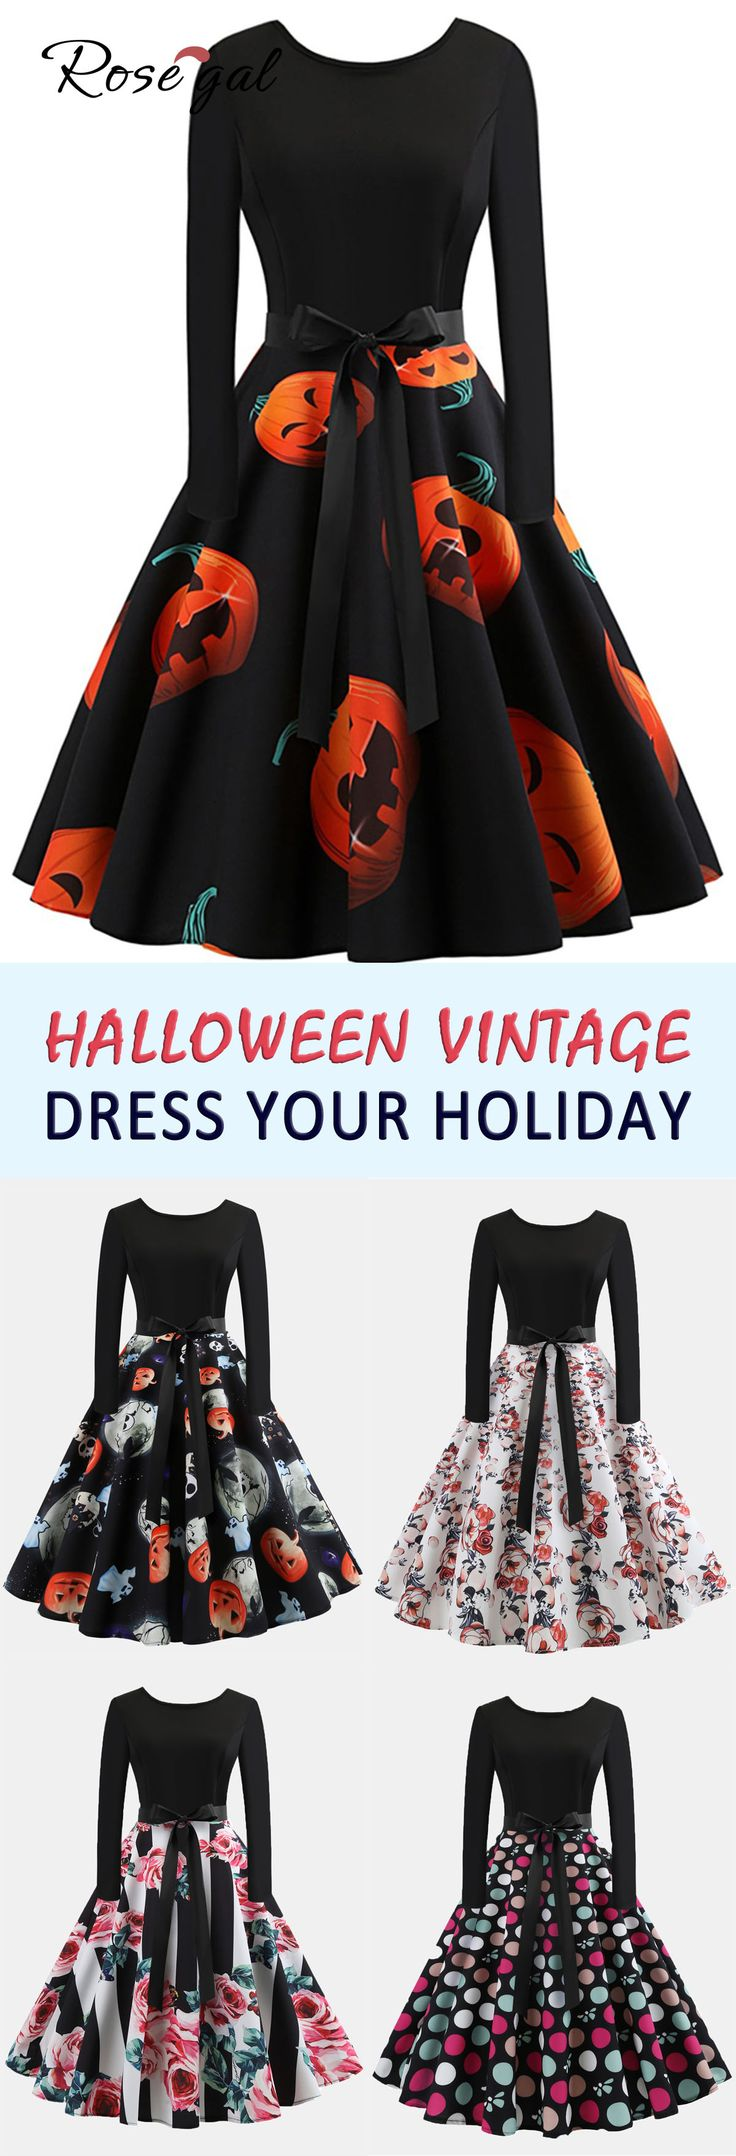 Halloween long sleeves vintage dress